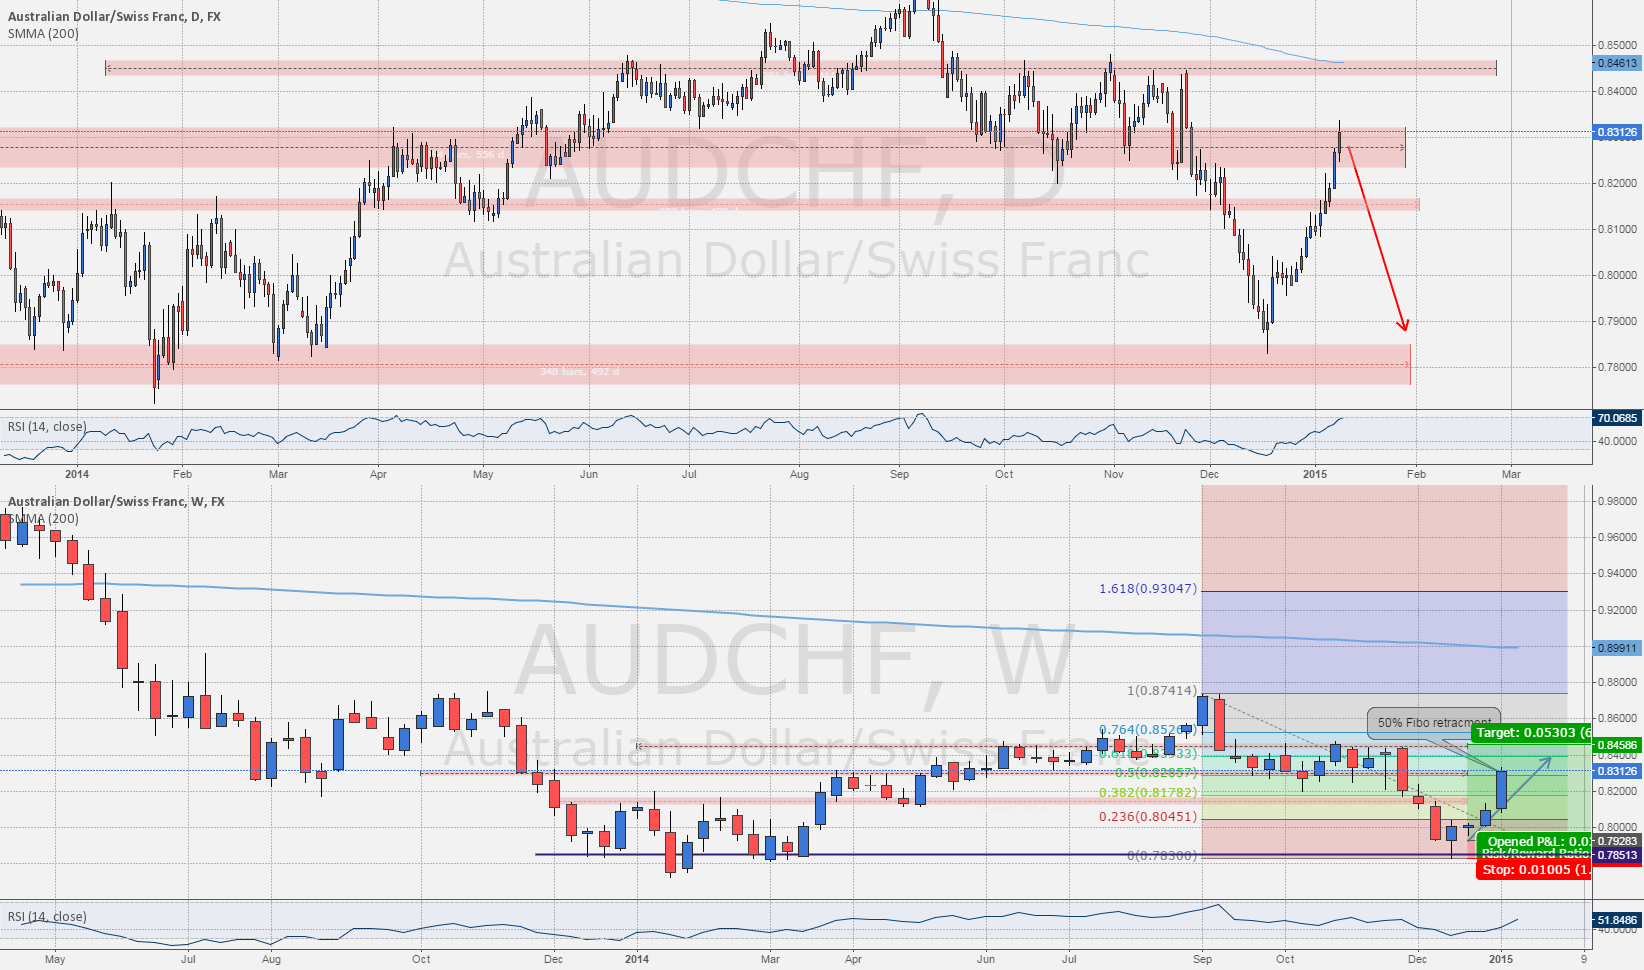 Level To Watch: #AUDCHF Monthly 50% Fibo retracement